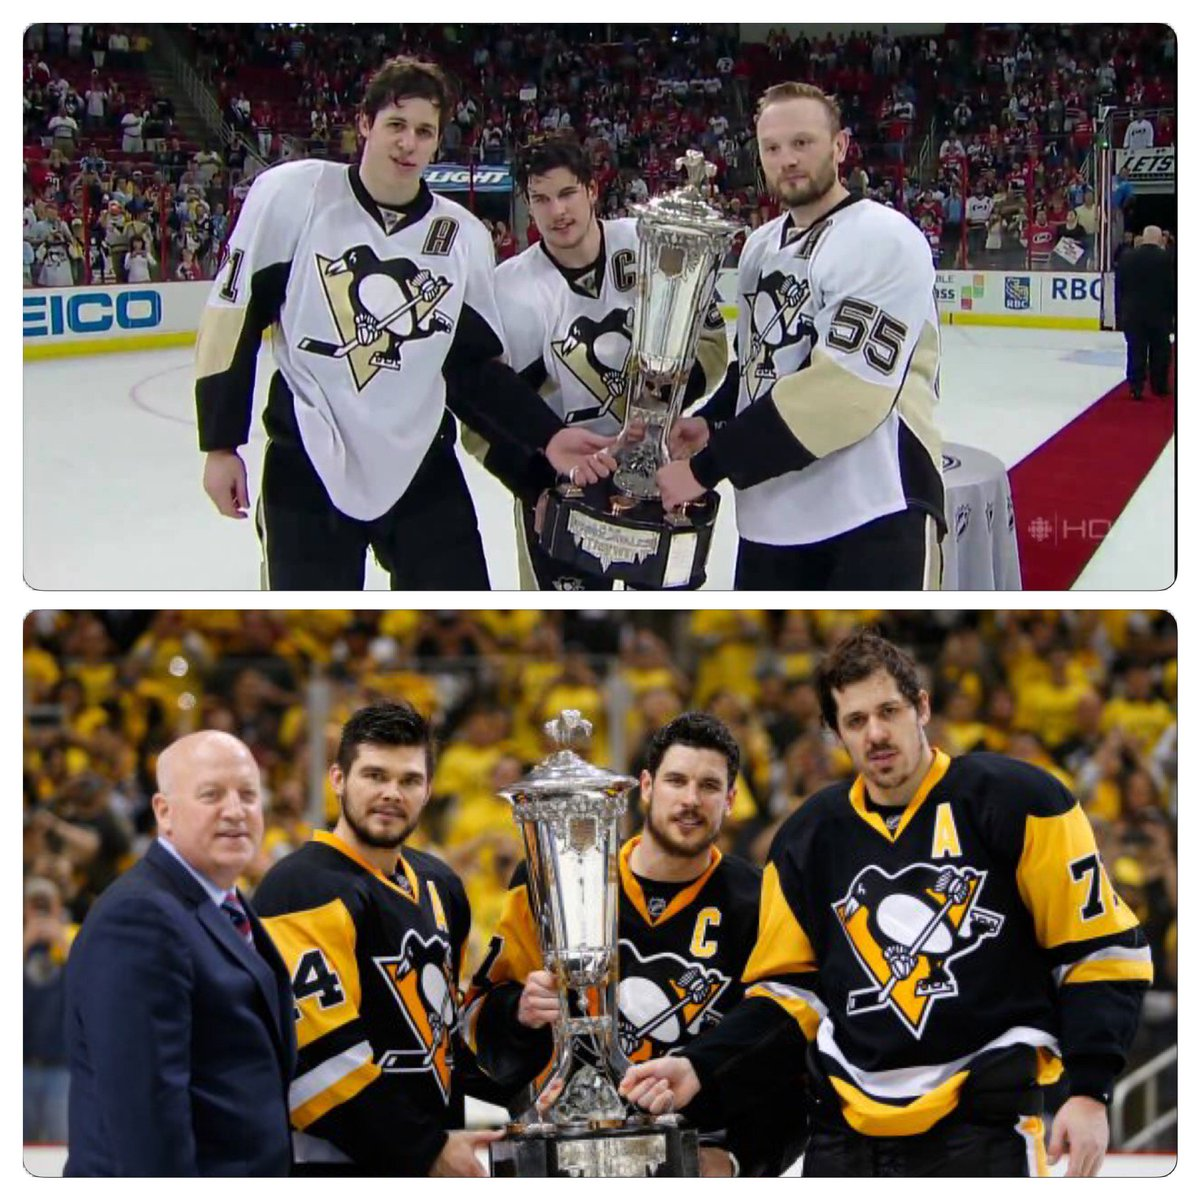 Sidney Crosby and Evgeni Malkin - older, but the same. Look at stance. Same gait, pose, different sides. #Pens #NHL https://t.co/3zaBpwo7Xp